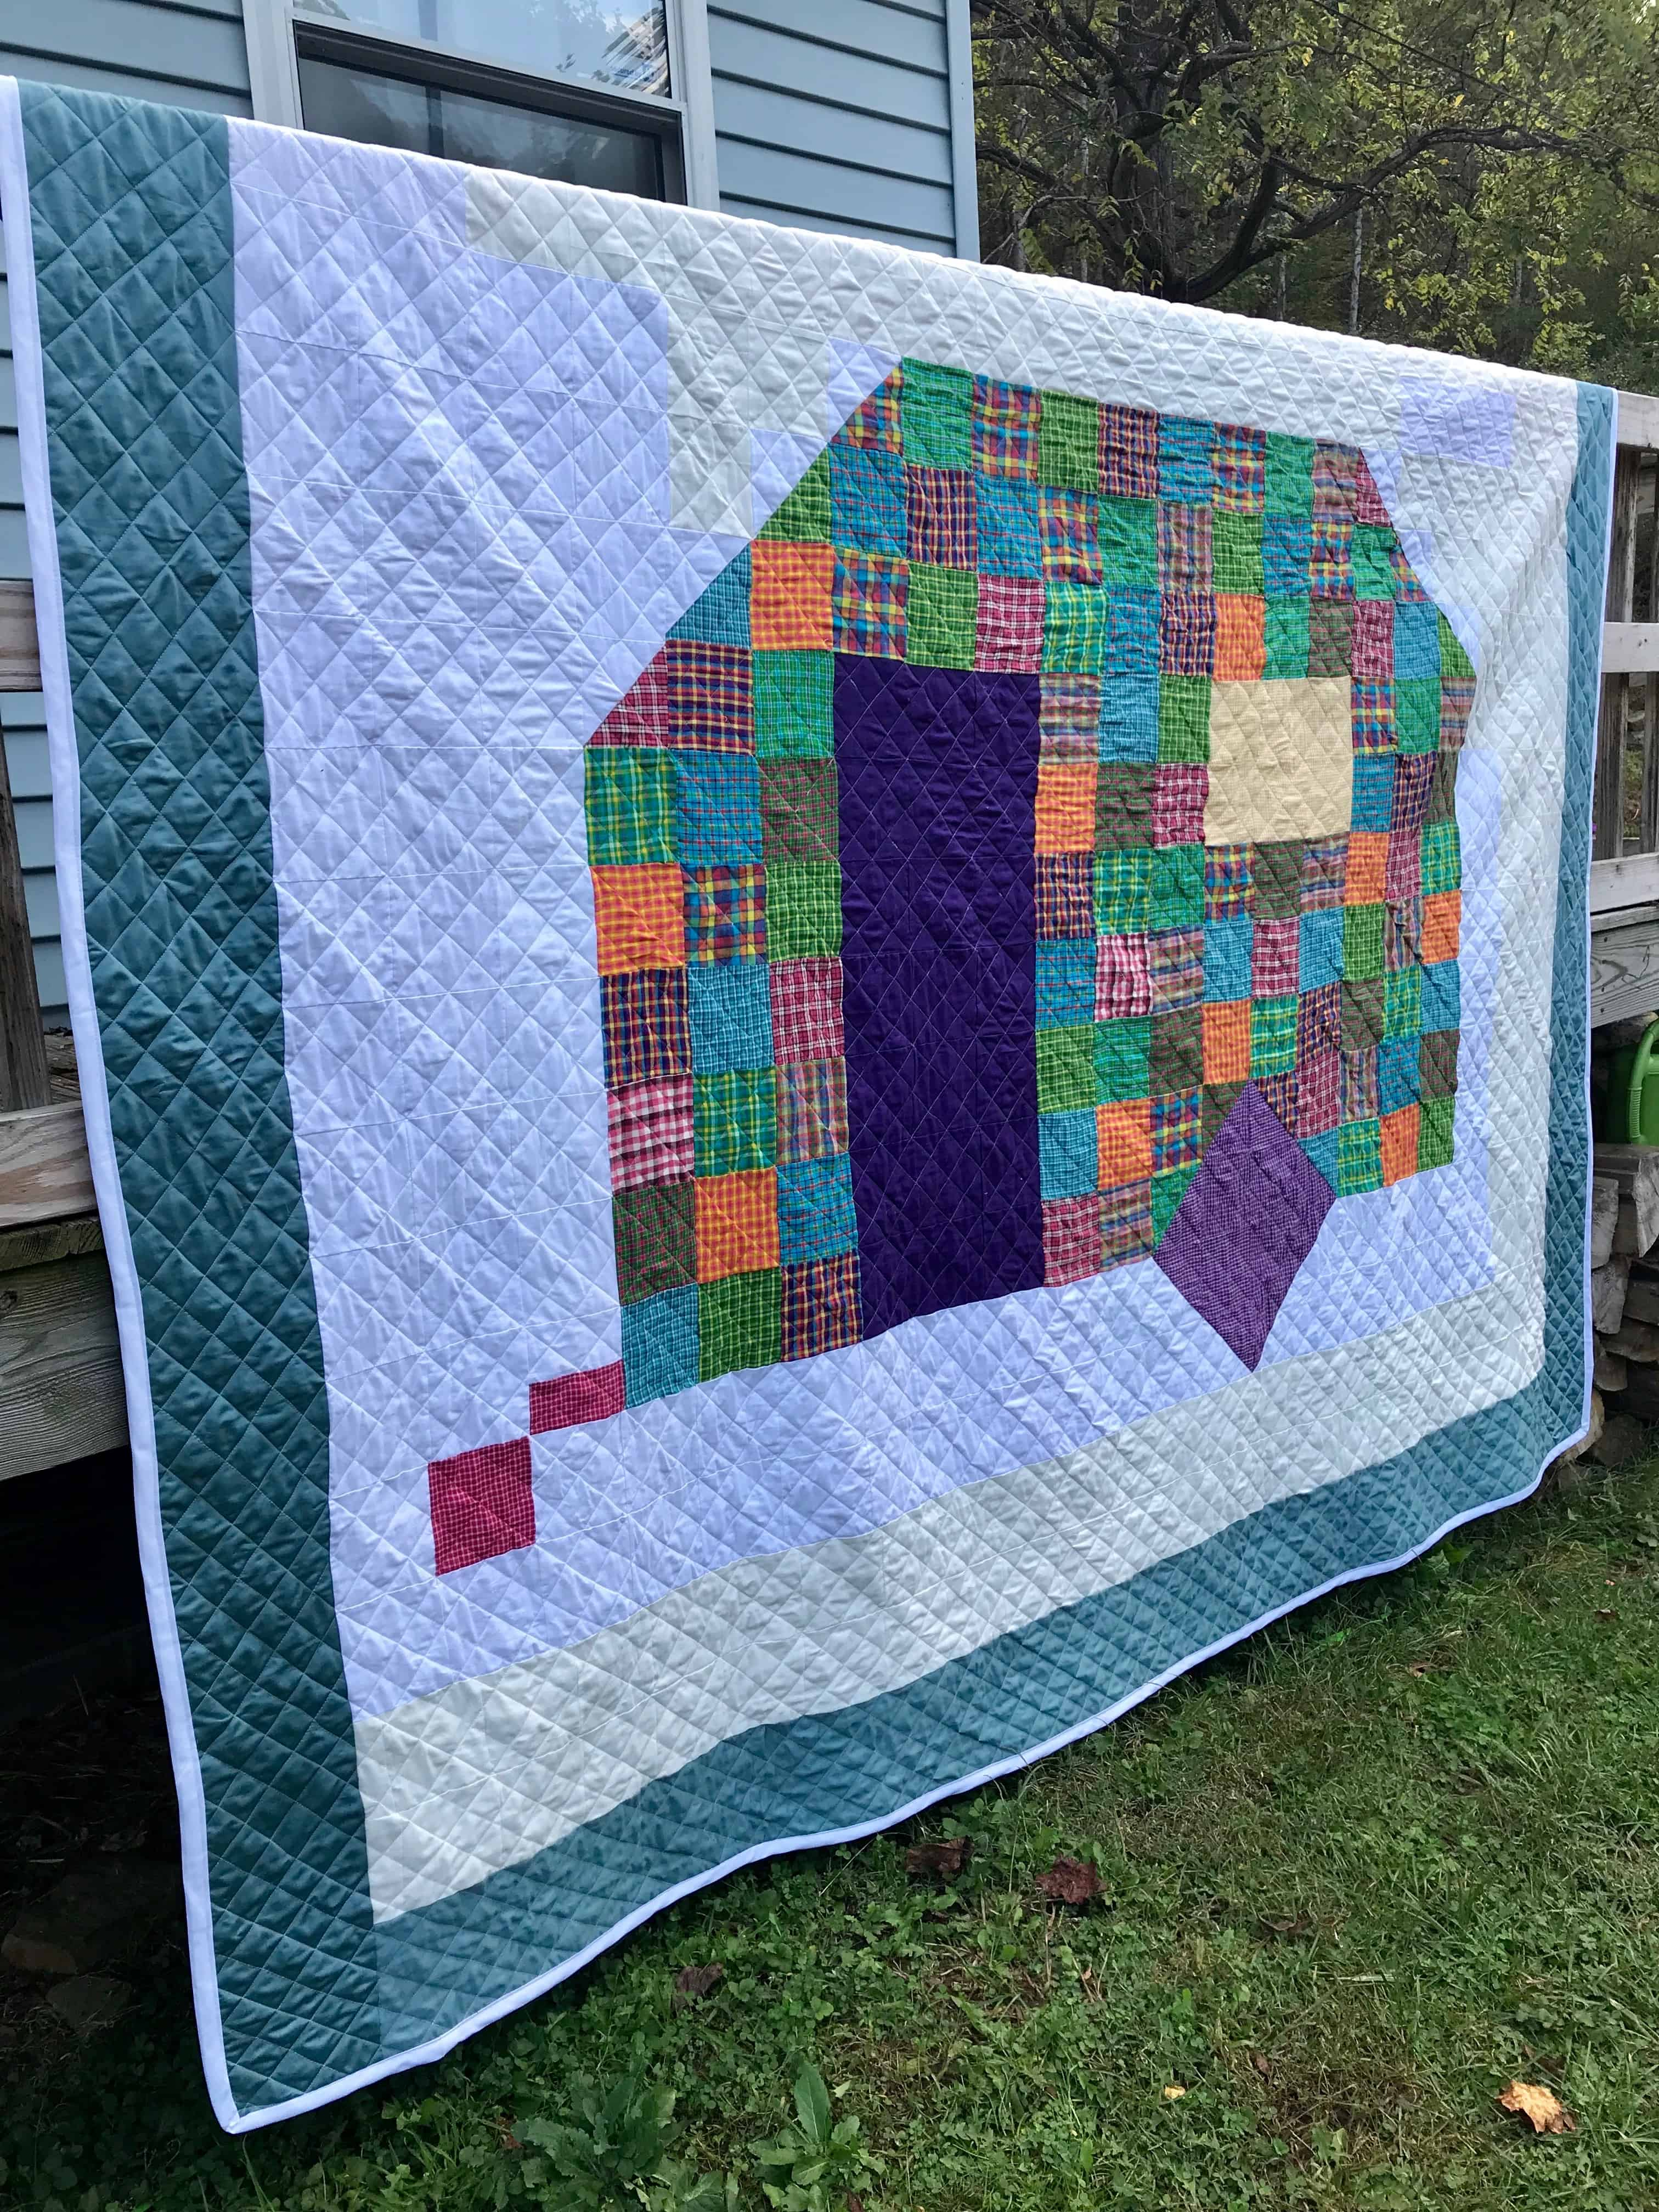 Happiest Camper Quilt Free Pattern  Happiest Camper